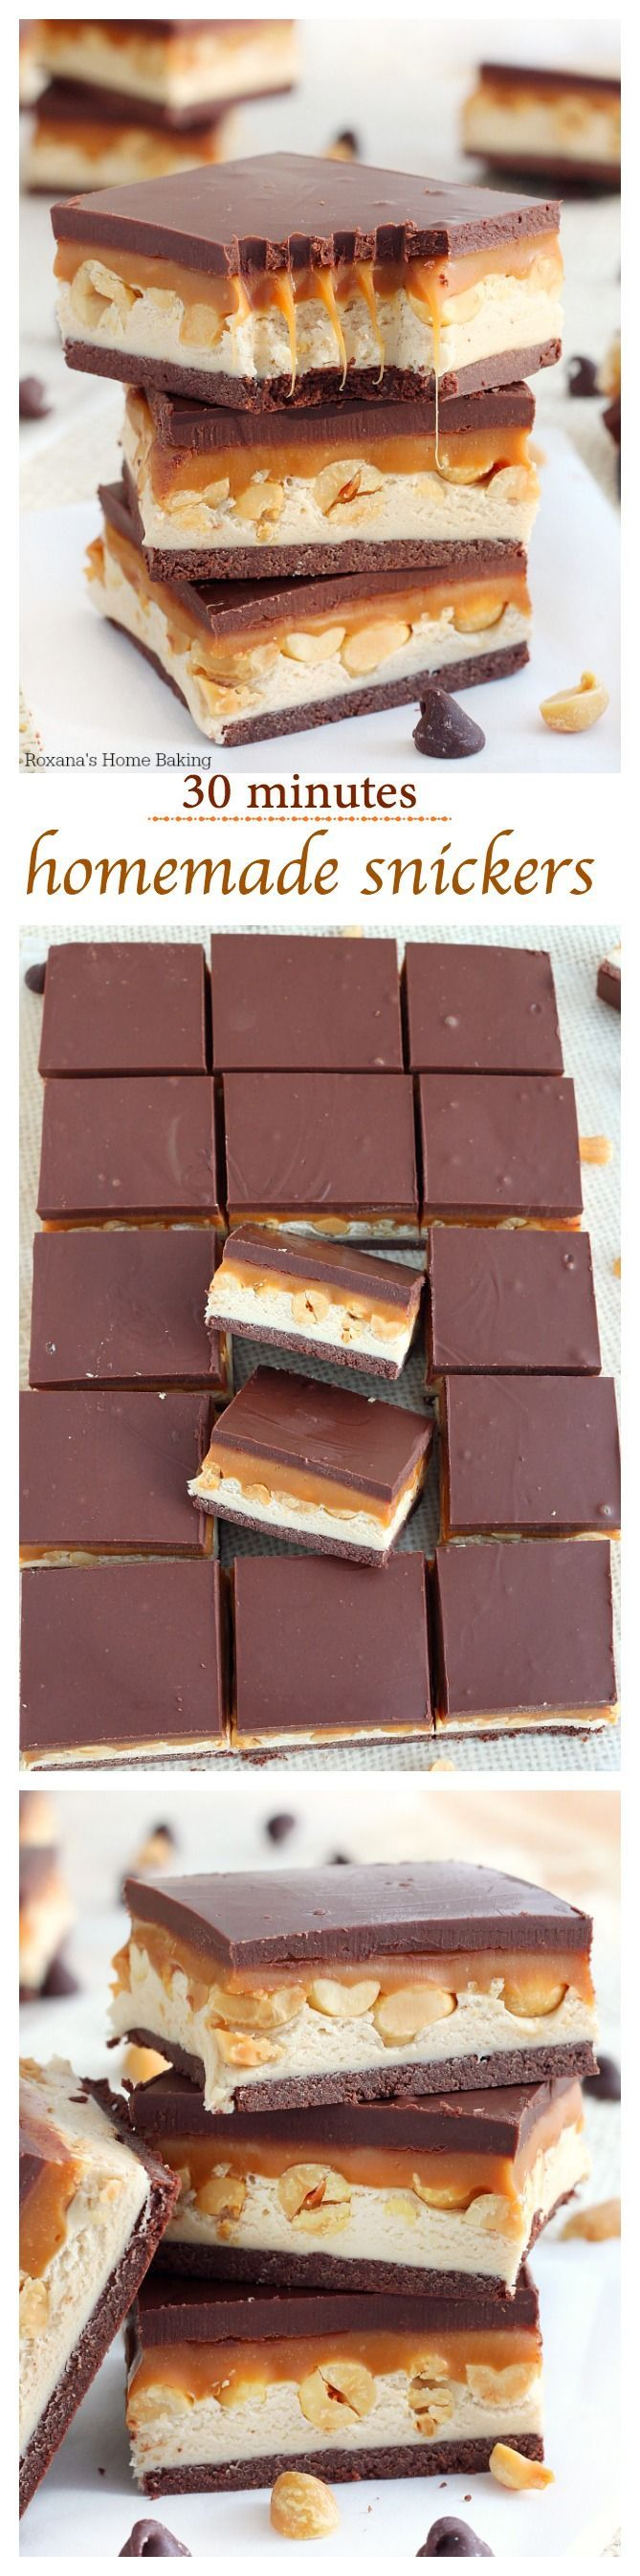 Homemade Snickers Bars #dan330 http://livedan330.com/2015/06/21/homemade-snickers-bars-2/